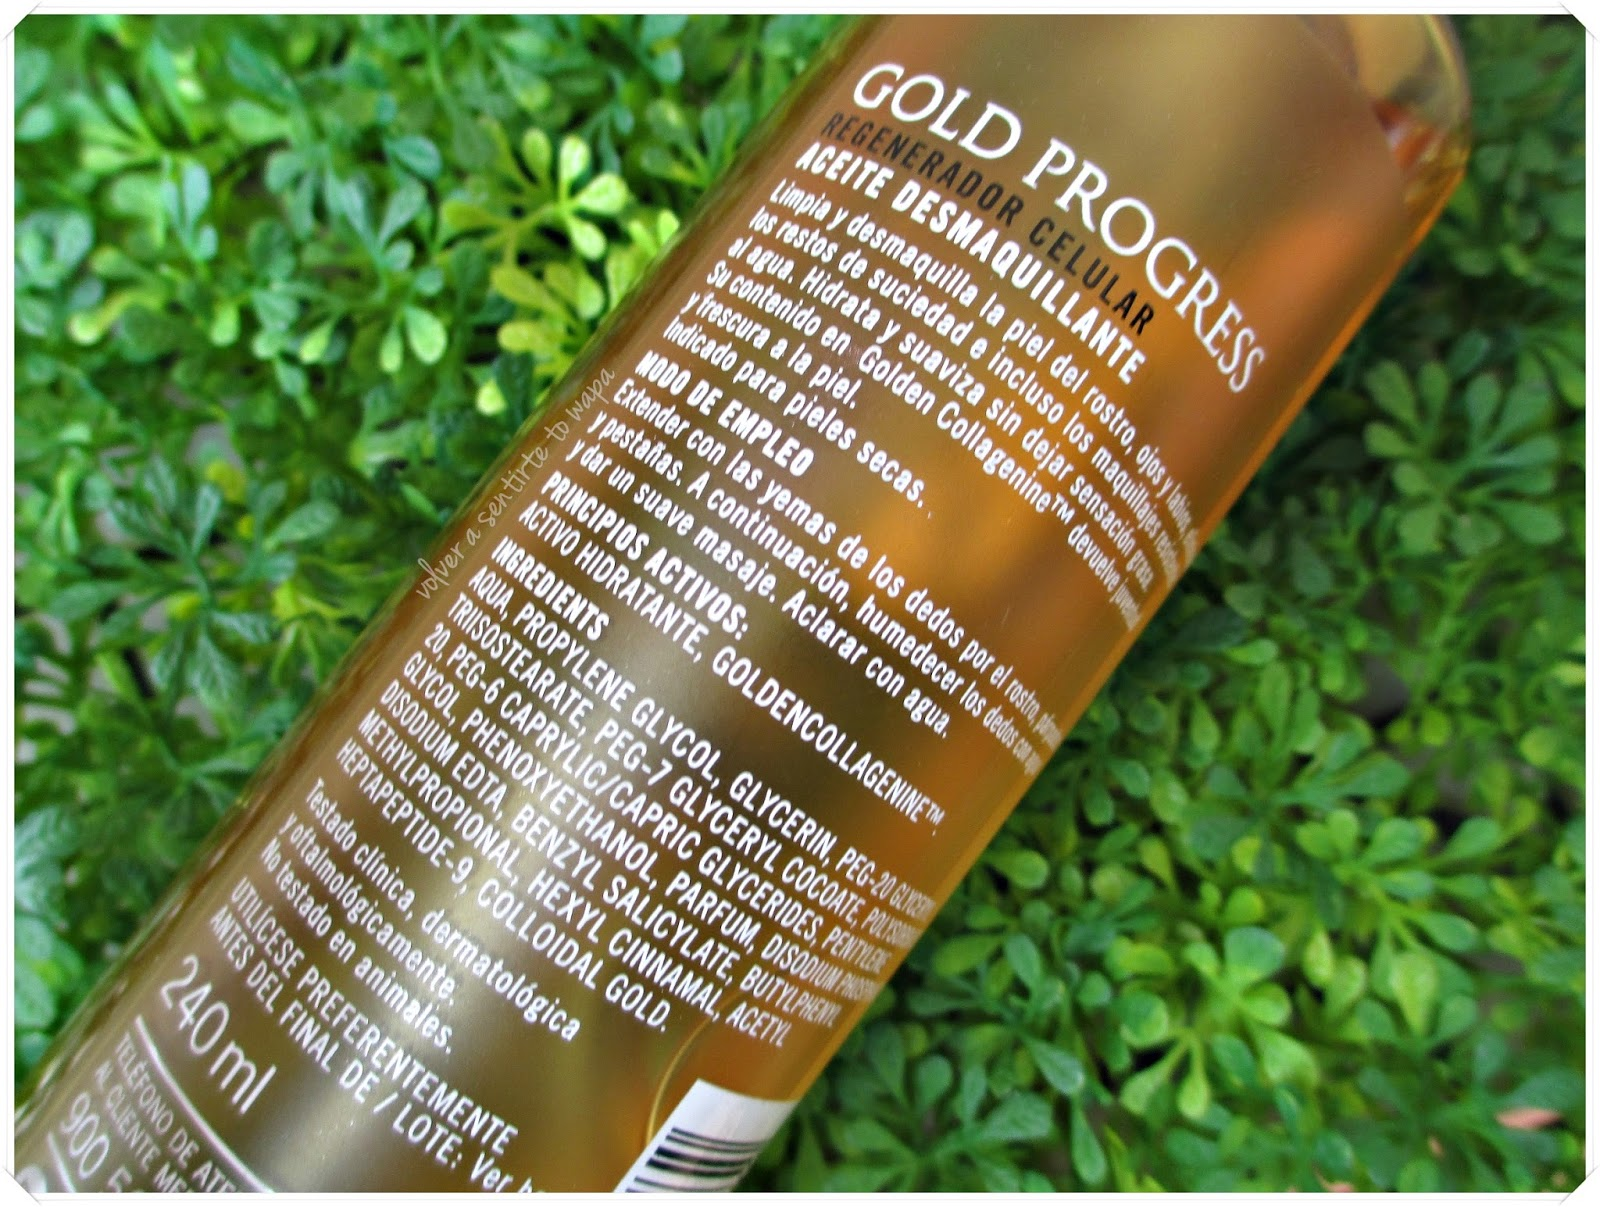 Aceite desmaquillante de Deliplús Gold Progress 14k - Review